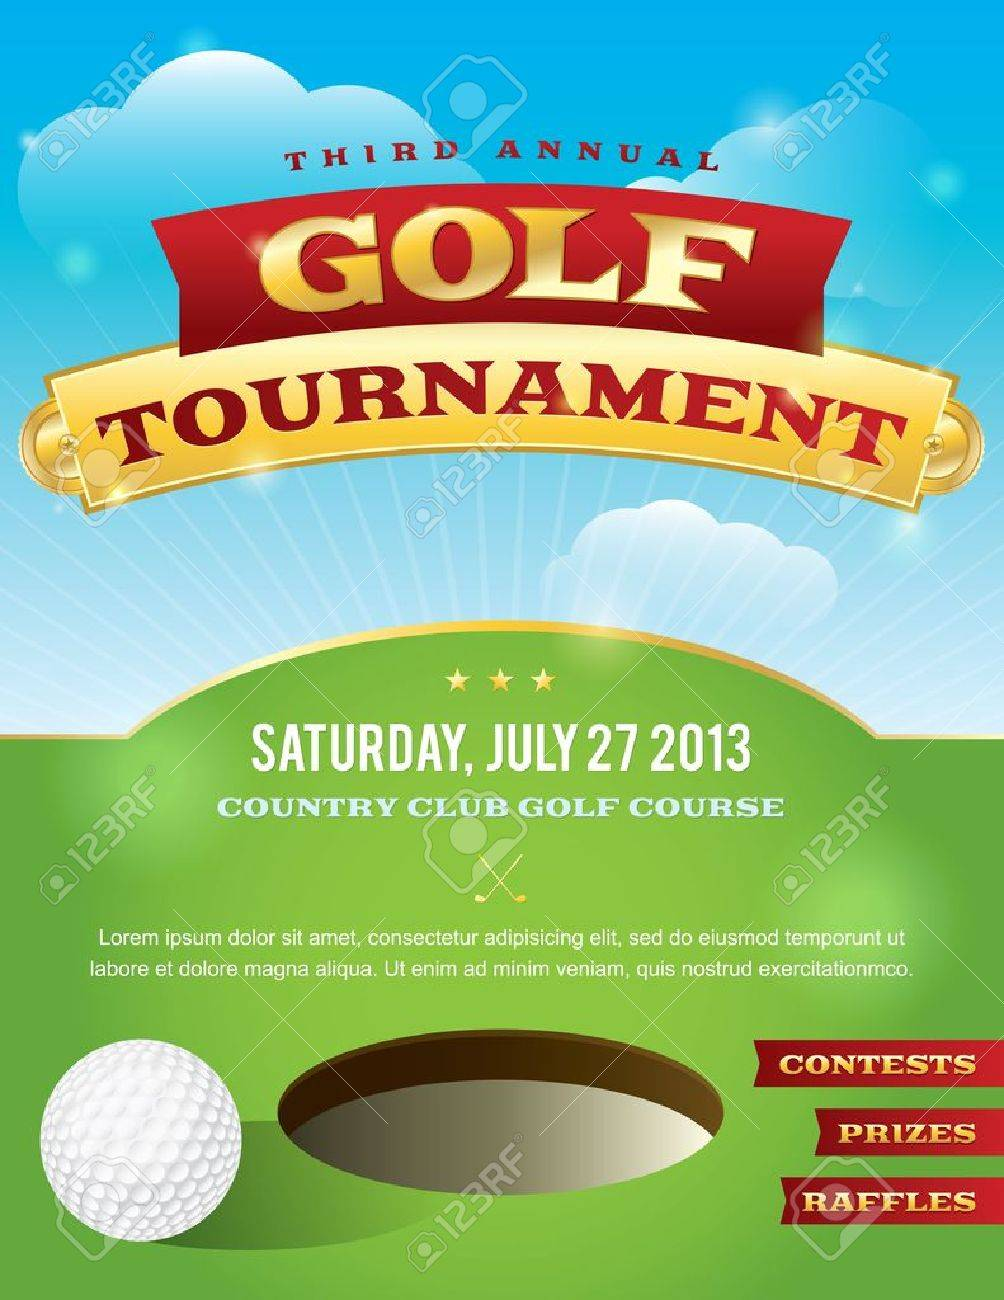 Golf Tournament Flyer Images & Stock Pictures. Royalty Free Golf ...